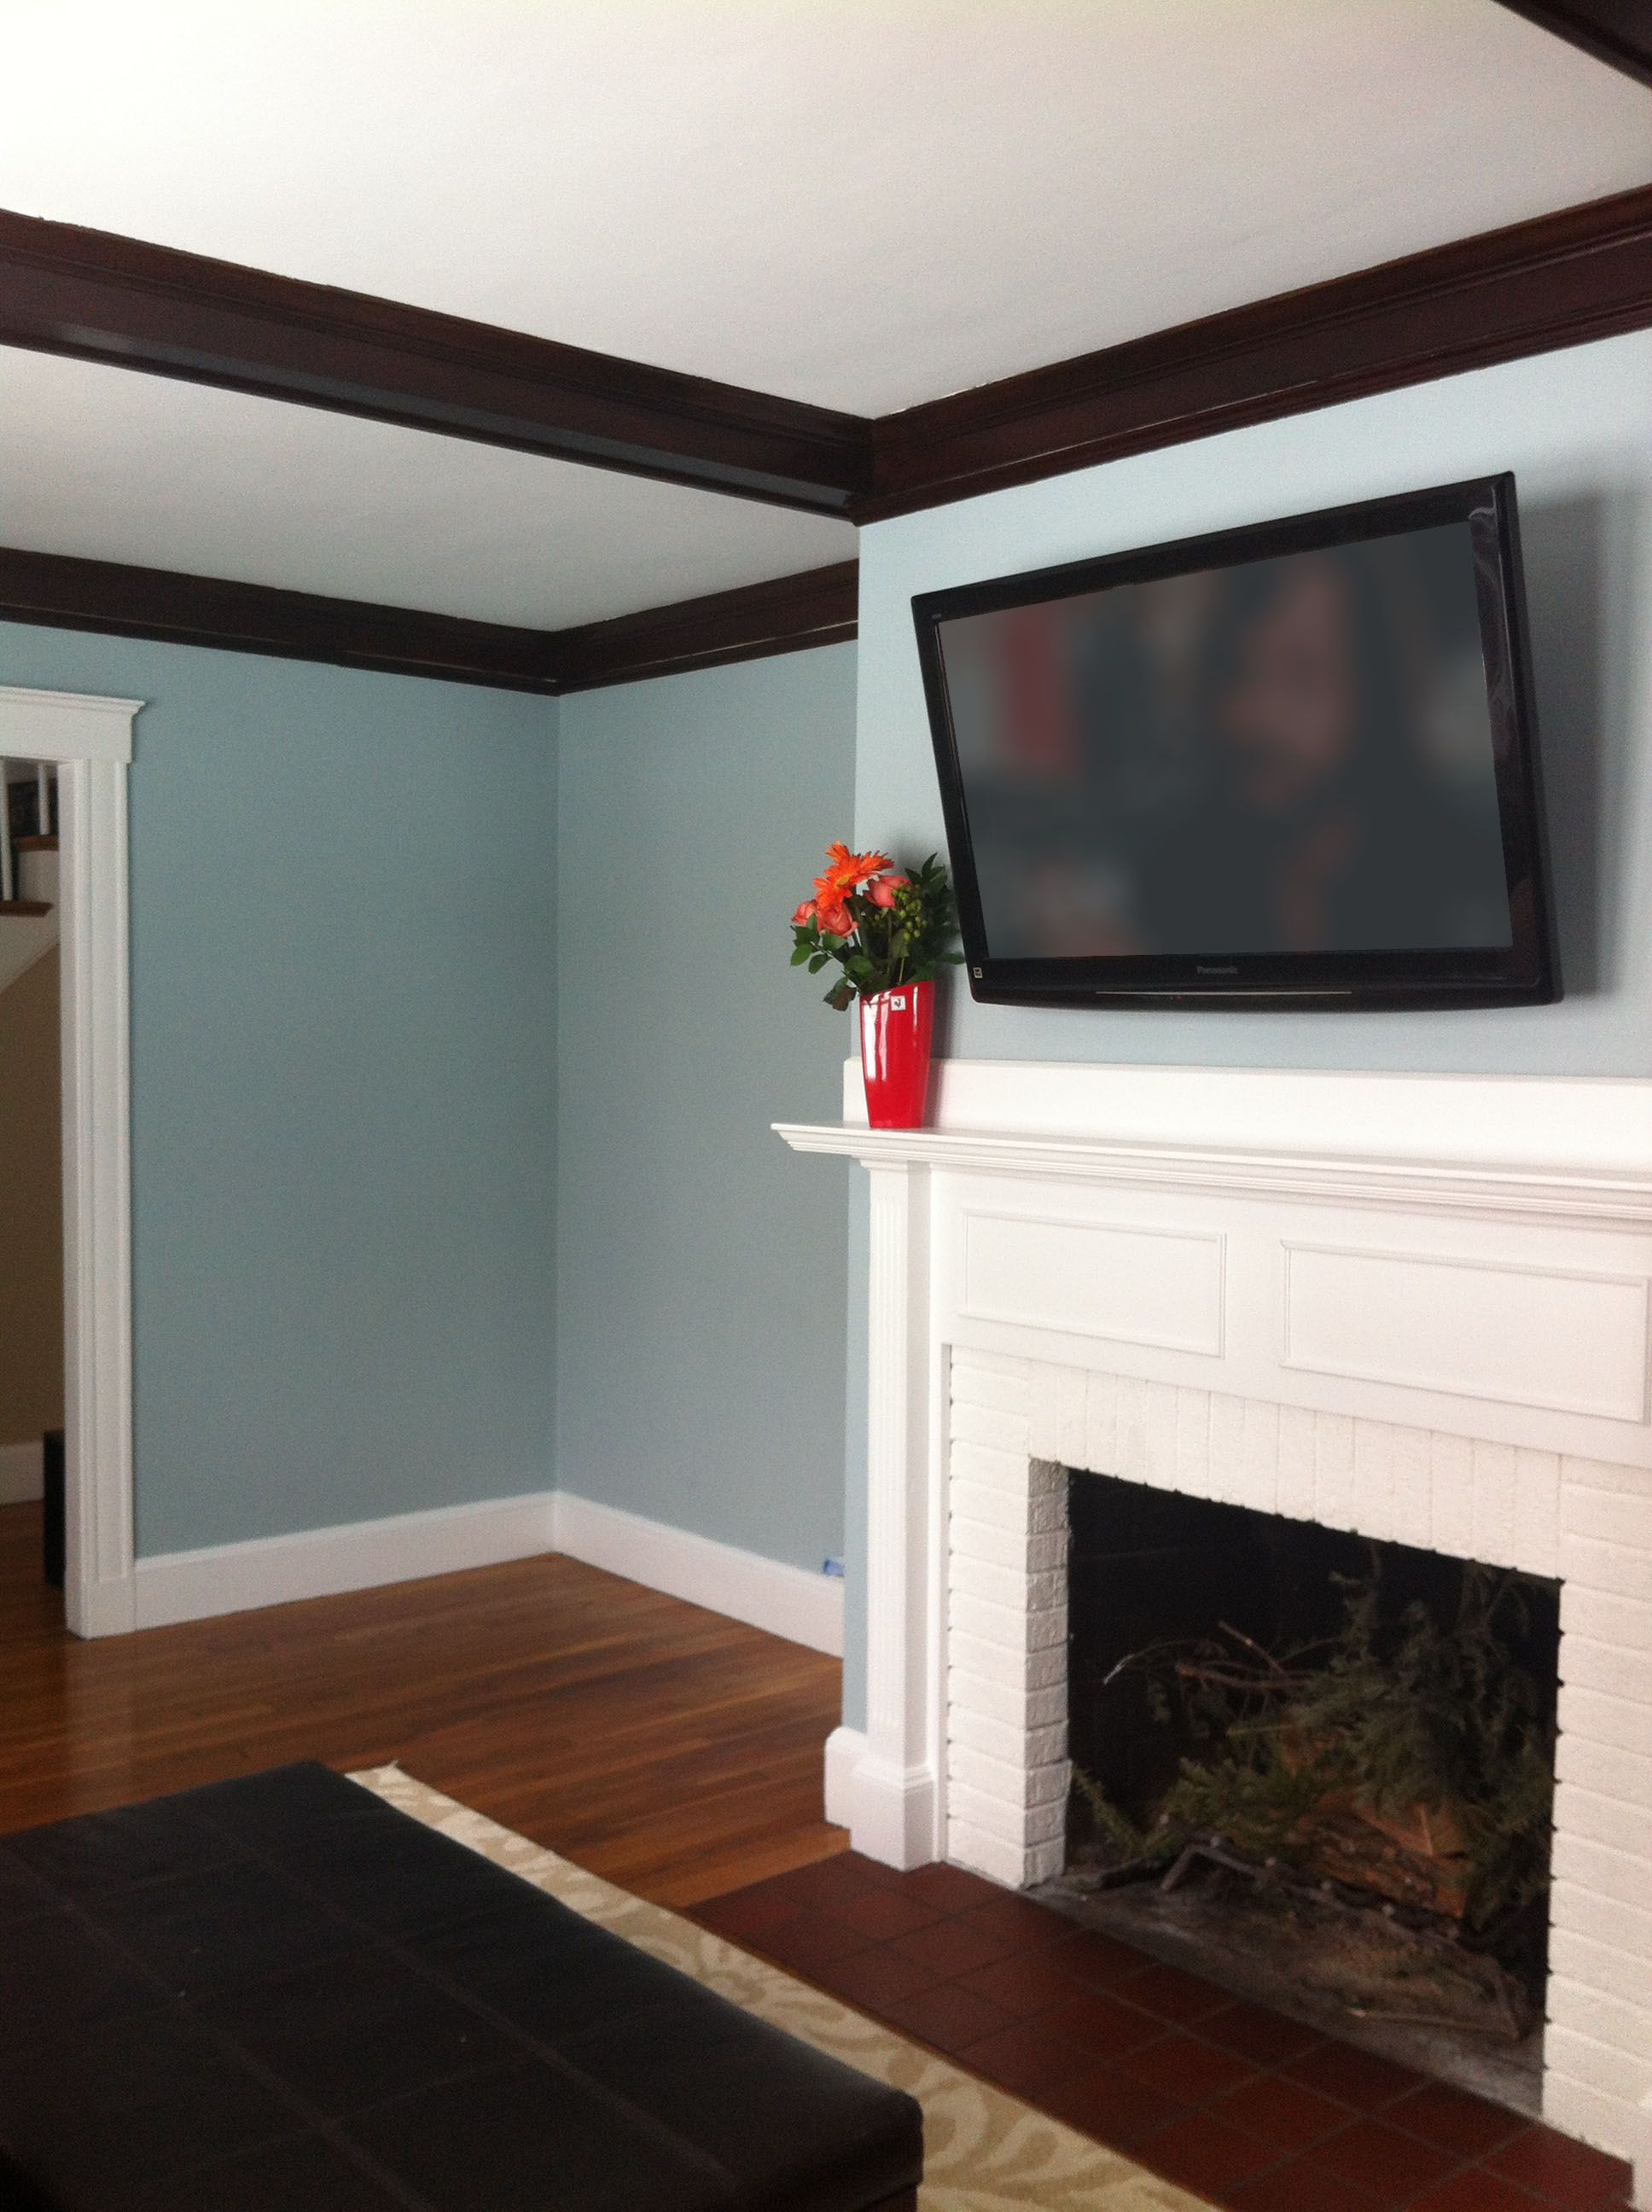 Living Room in Benjamin Moore Yarmouth Blue Paint | For ...